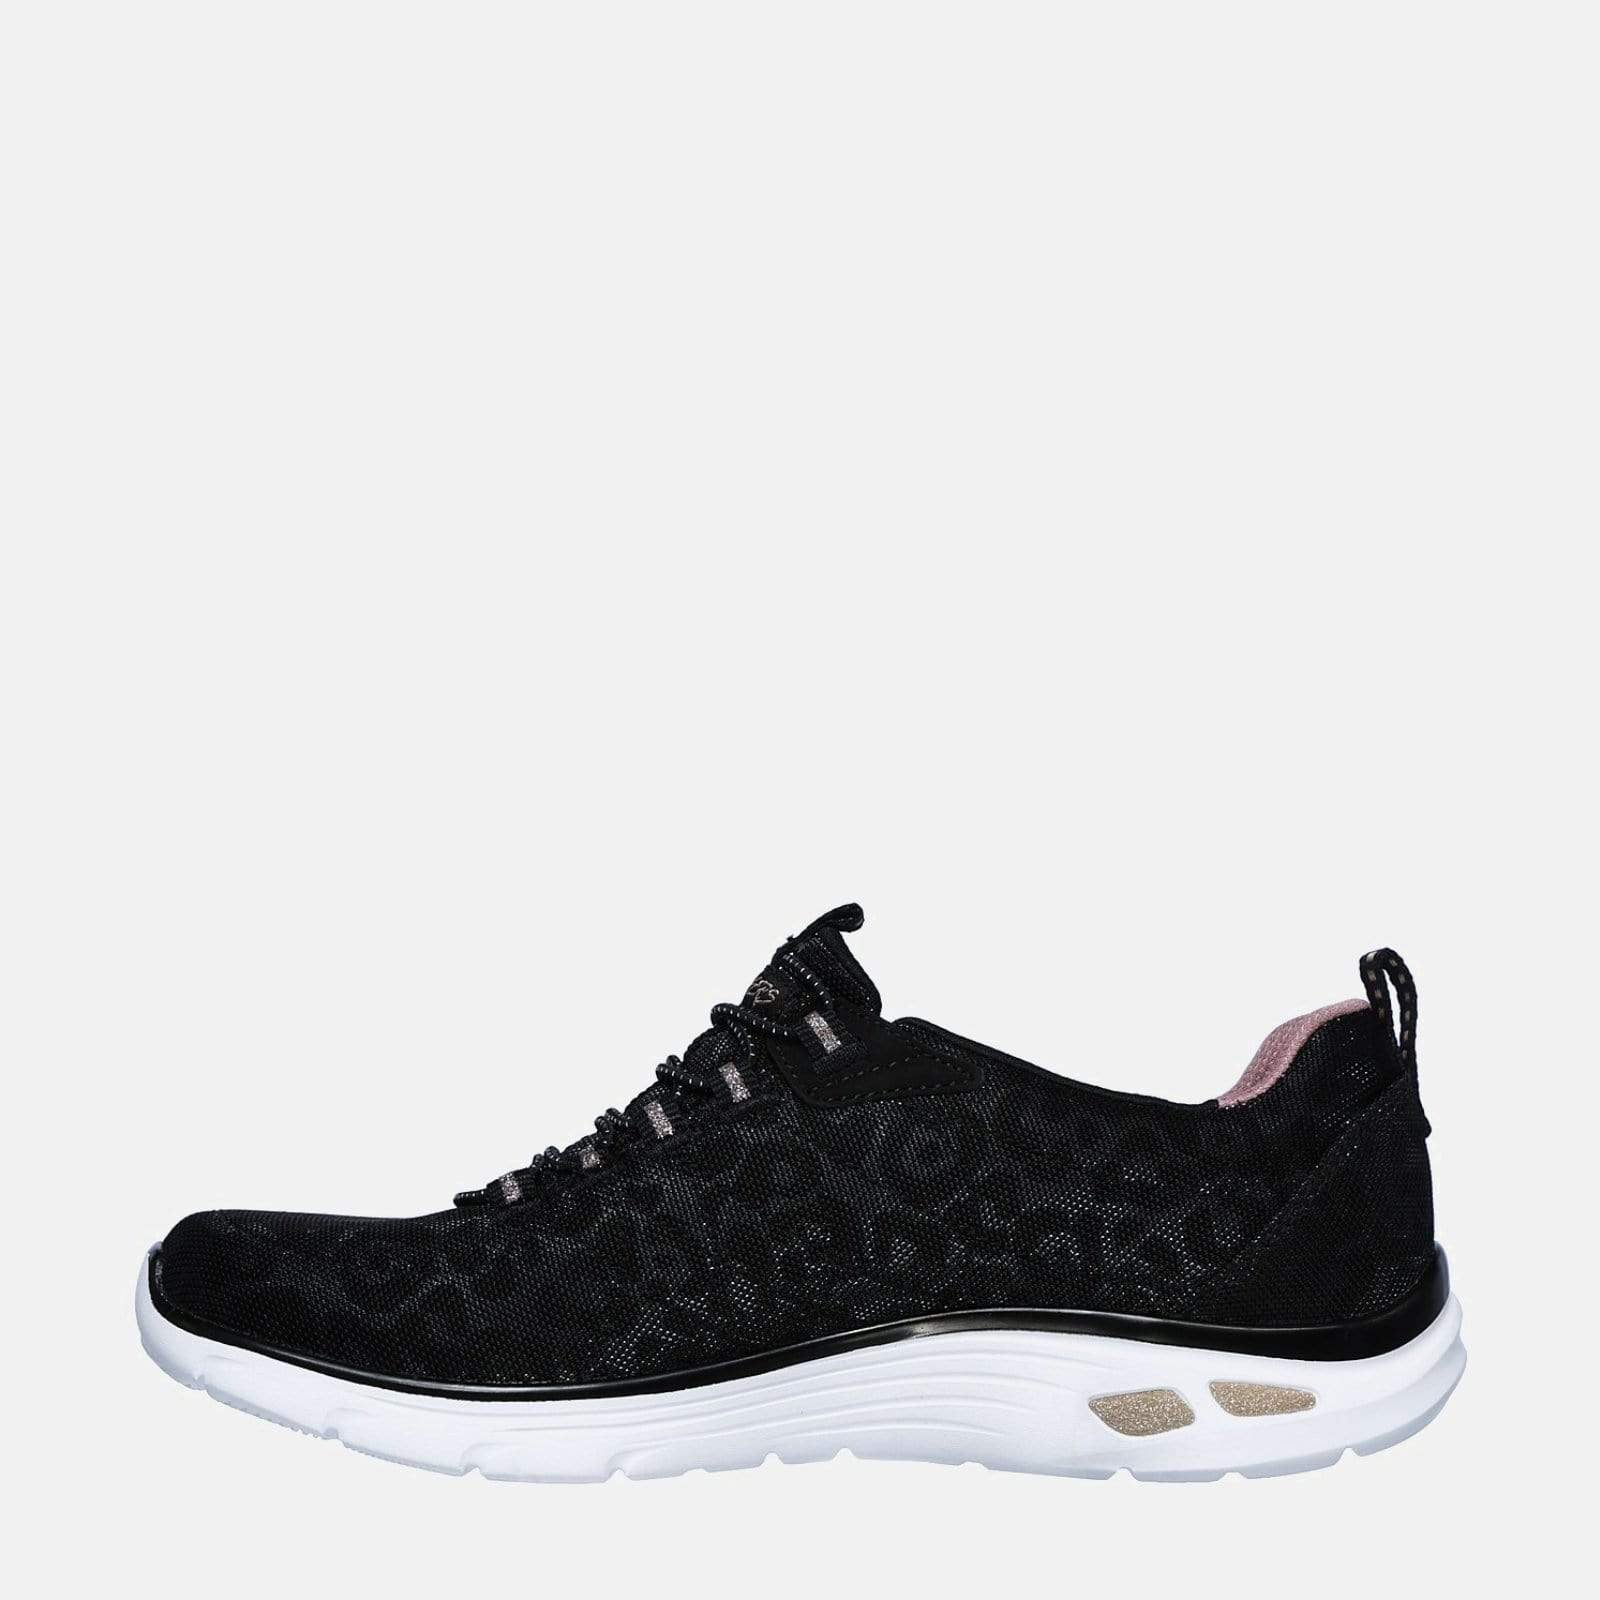 Skechers Footwear Empire D'Lux Spotted 12825 Black Rose Gold